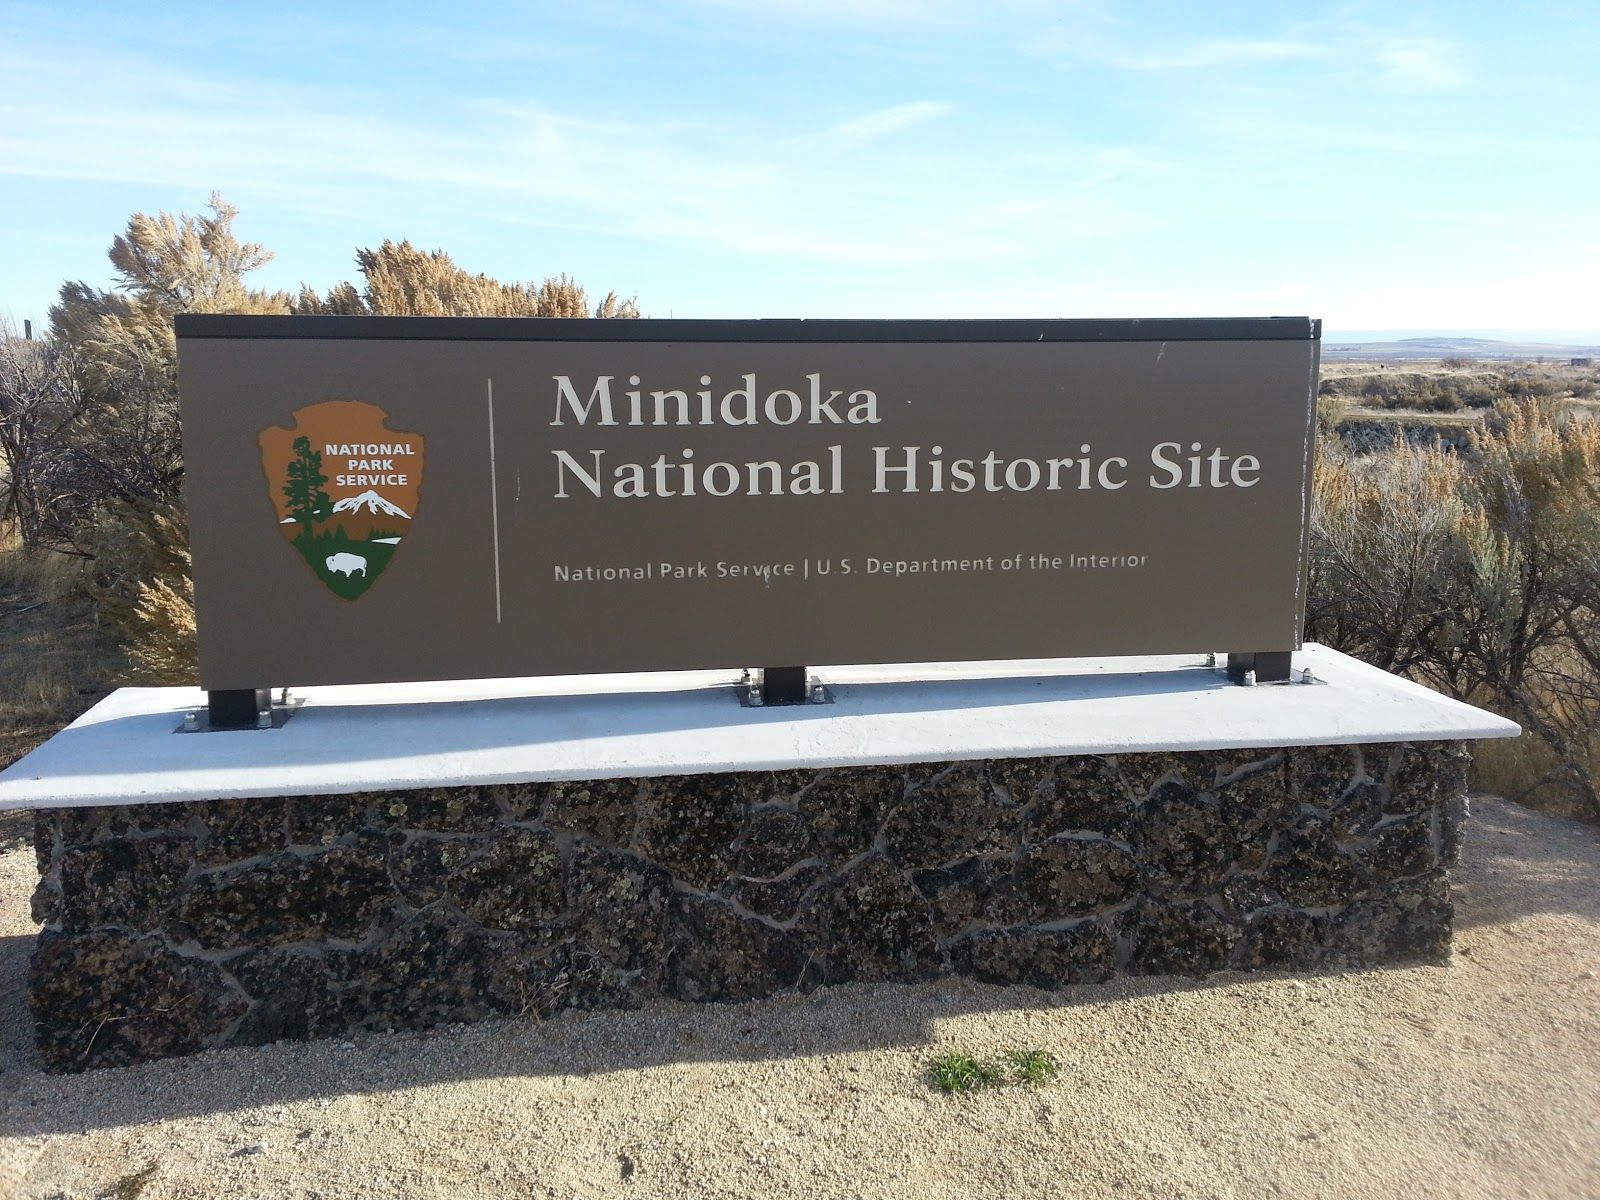 minidoka personals Personals & singles in minidoka, idaho - 100% free welcome to datehookupcom we're 100% free for everything, meet minidoka singles todaychat with singles on our free minidoka dating site.